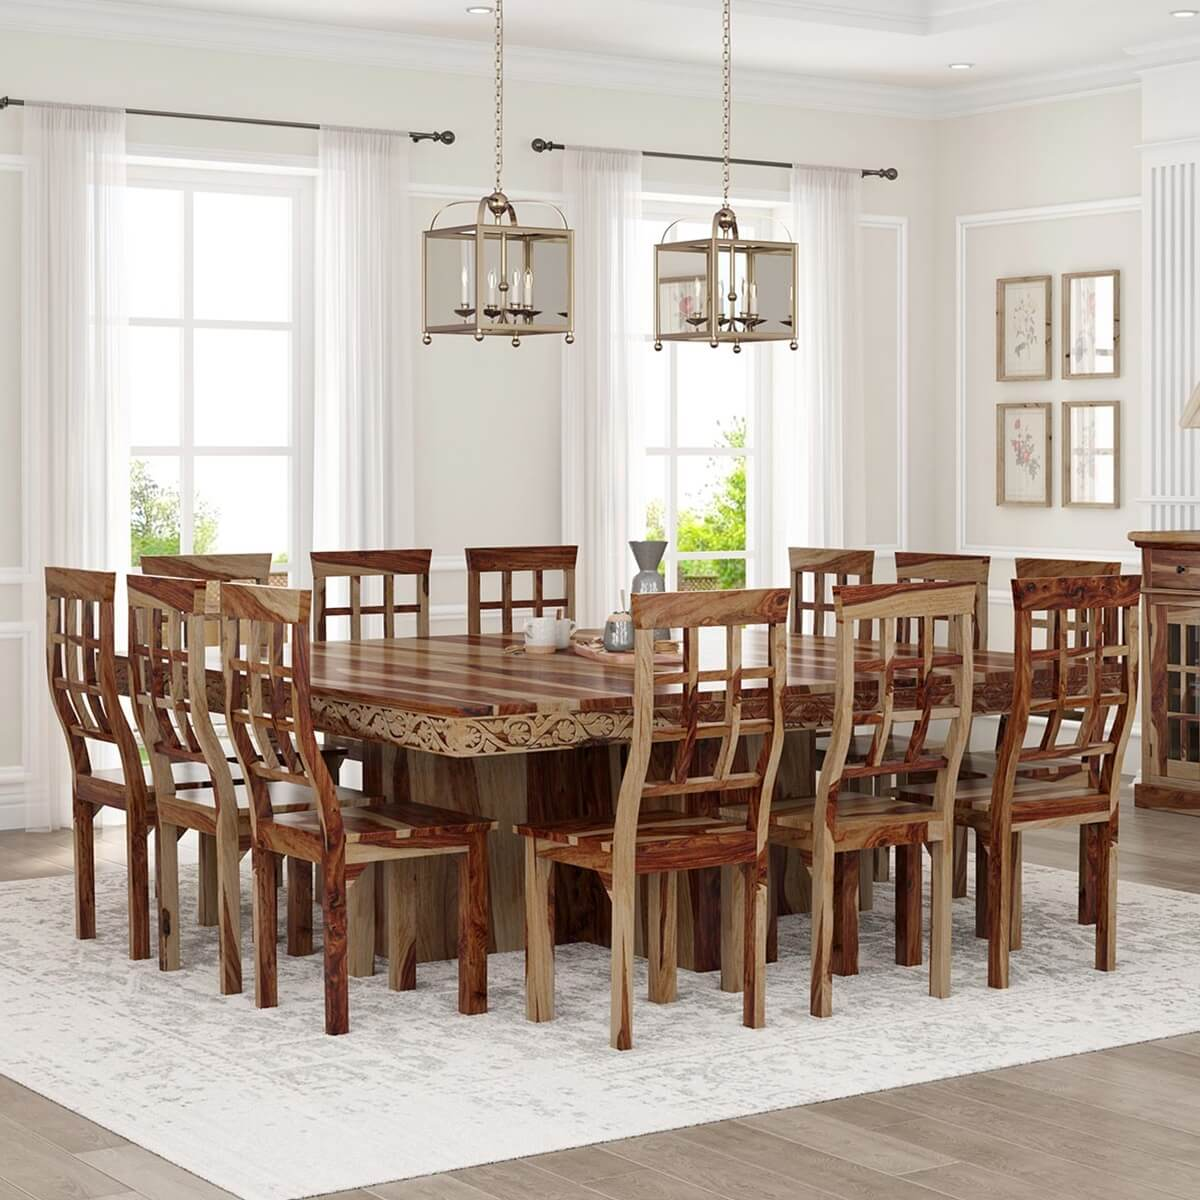 Dallas ranch large square dining room table and chair set for Large dining room chairs